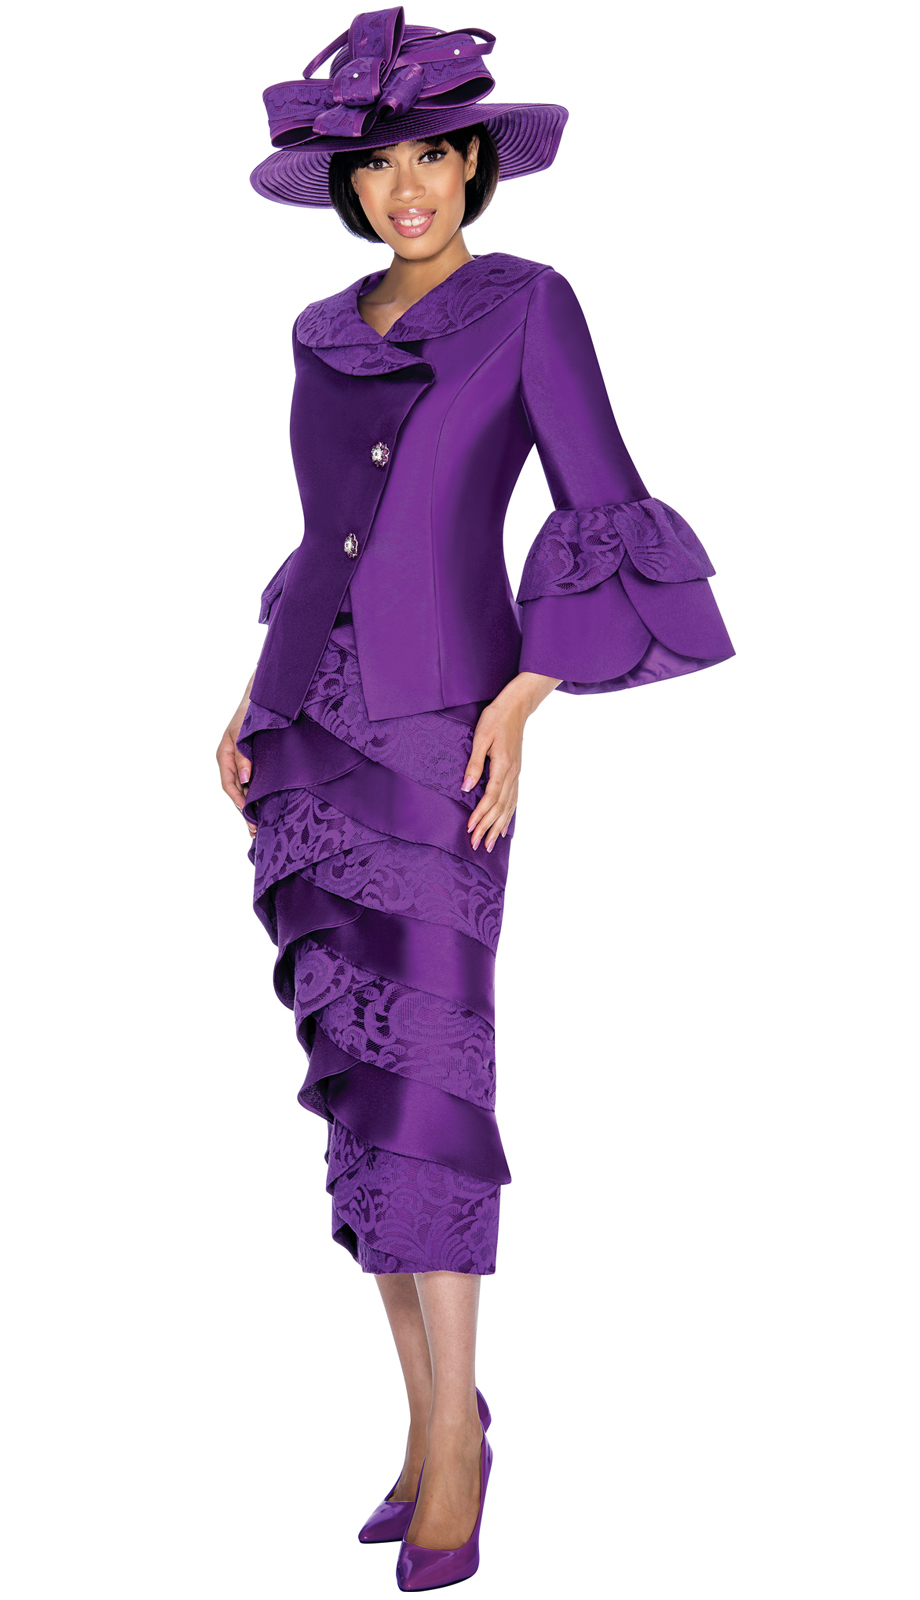 Gmi Suit 6932 2 Piece Women S Suit With Cross Over Jacket And Skirt